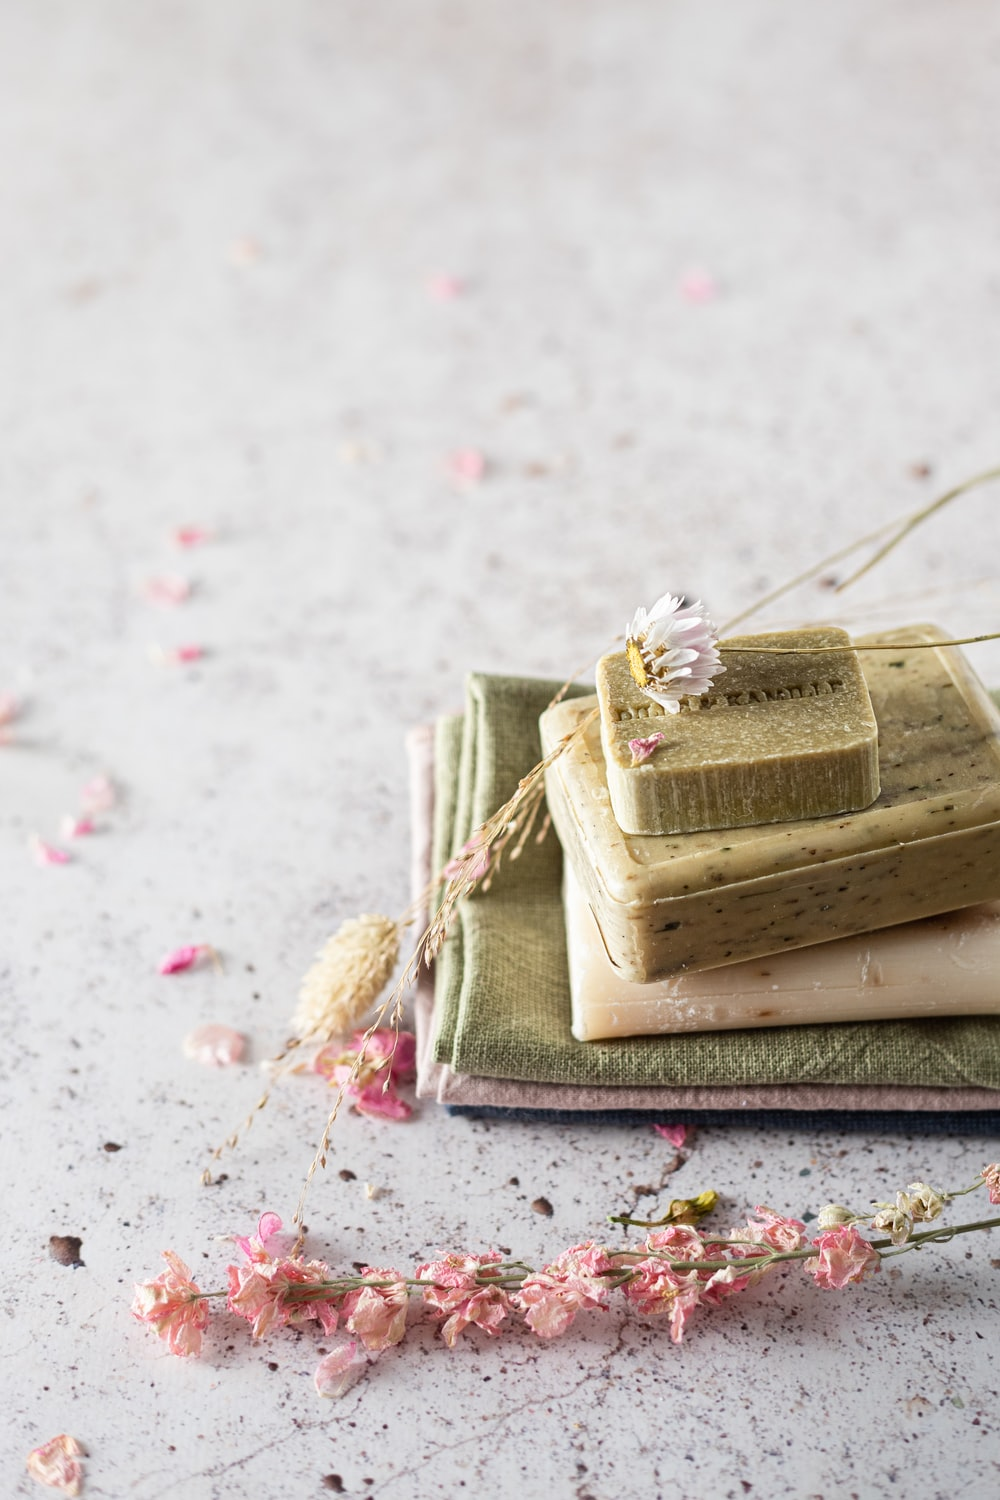 brown and beige cake on white and pink floral textile